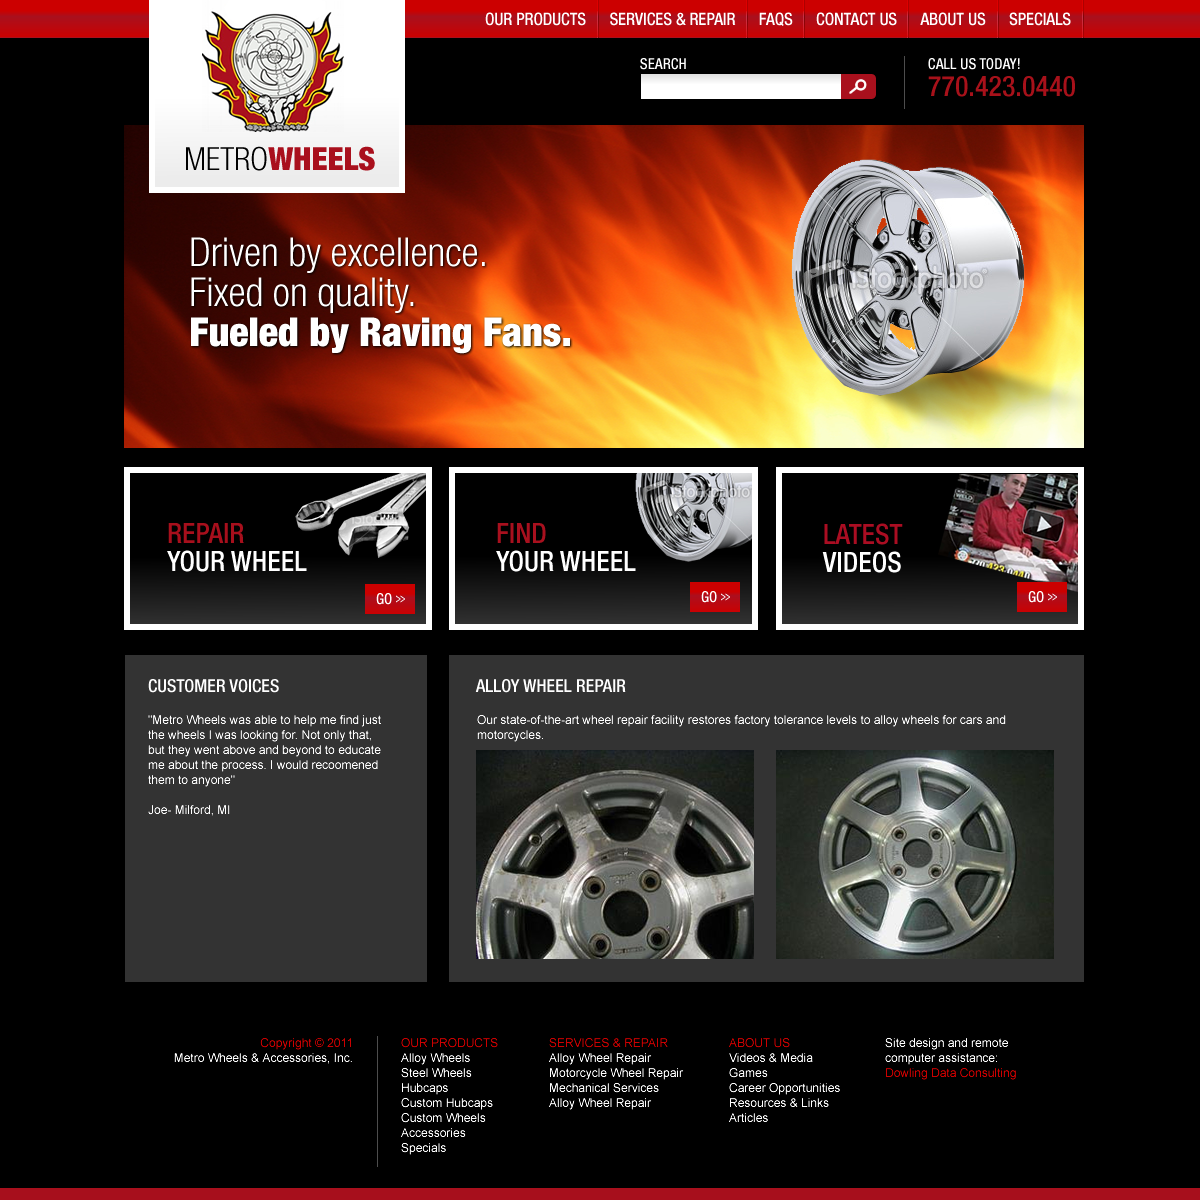 Dowling Data Consulting • Website & Logo Design: Metro Wheels